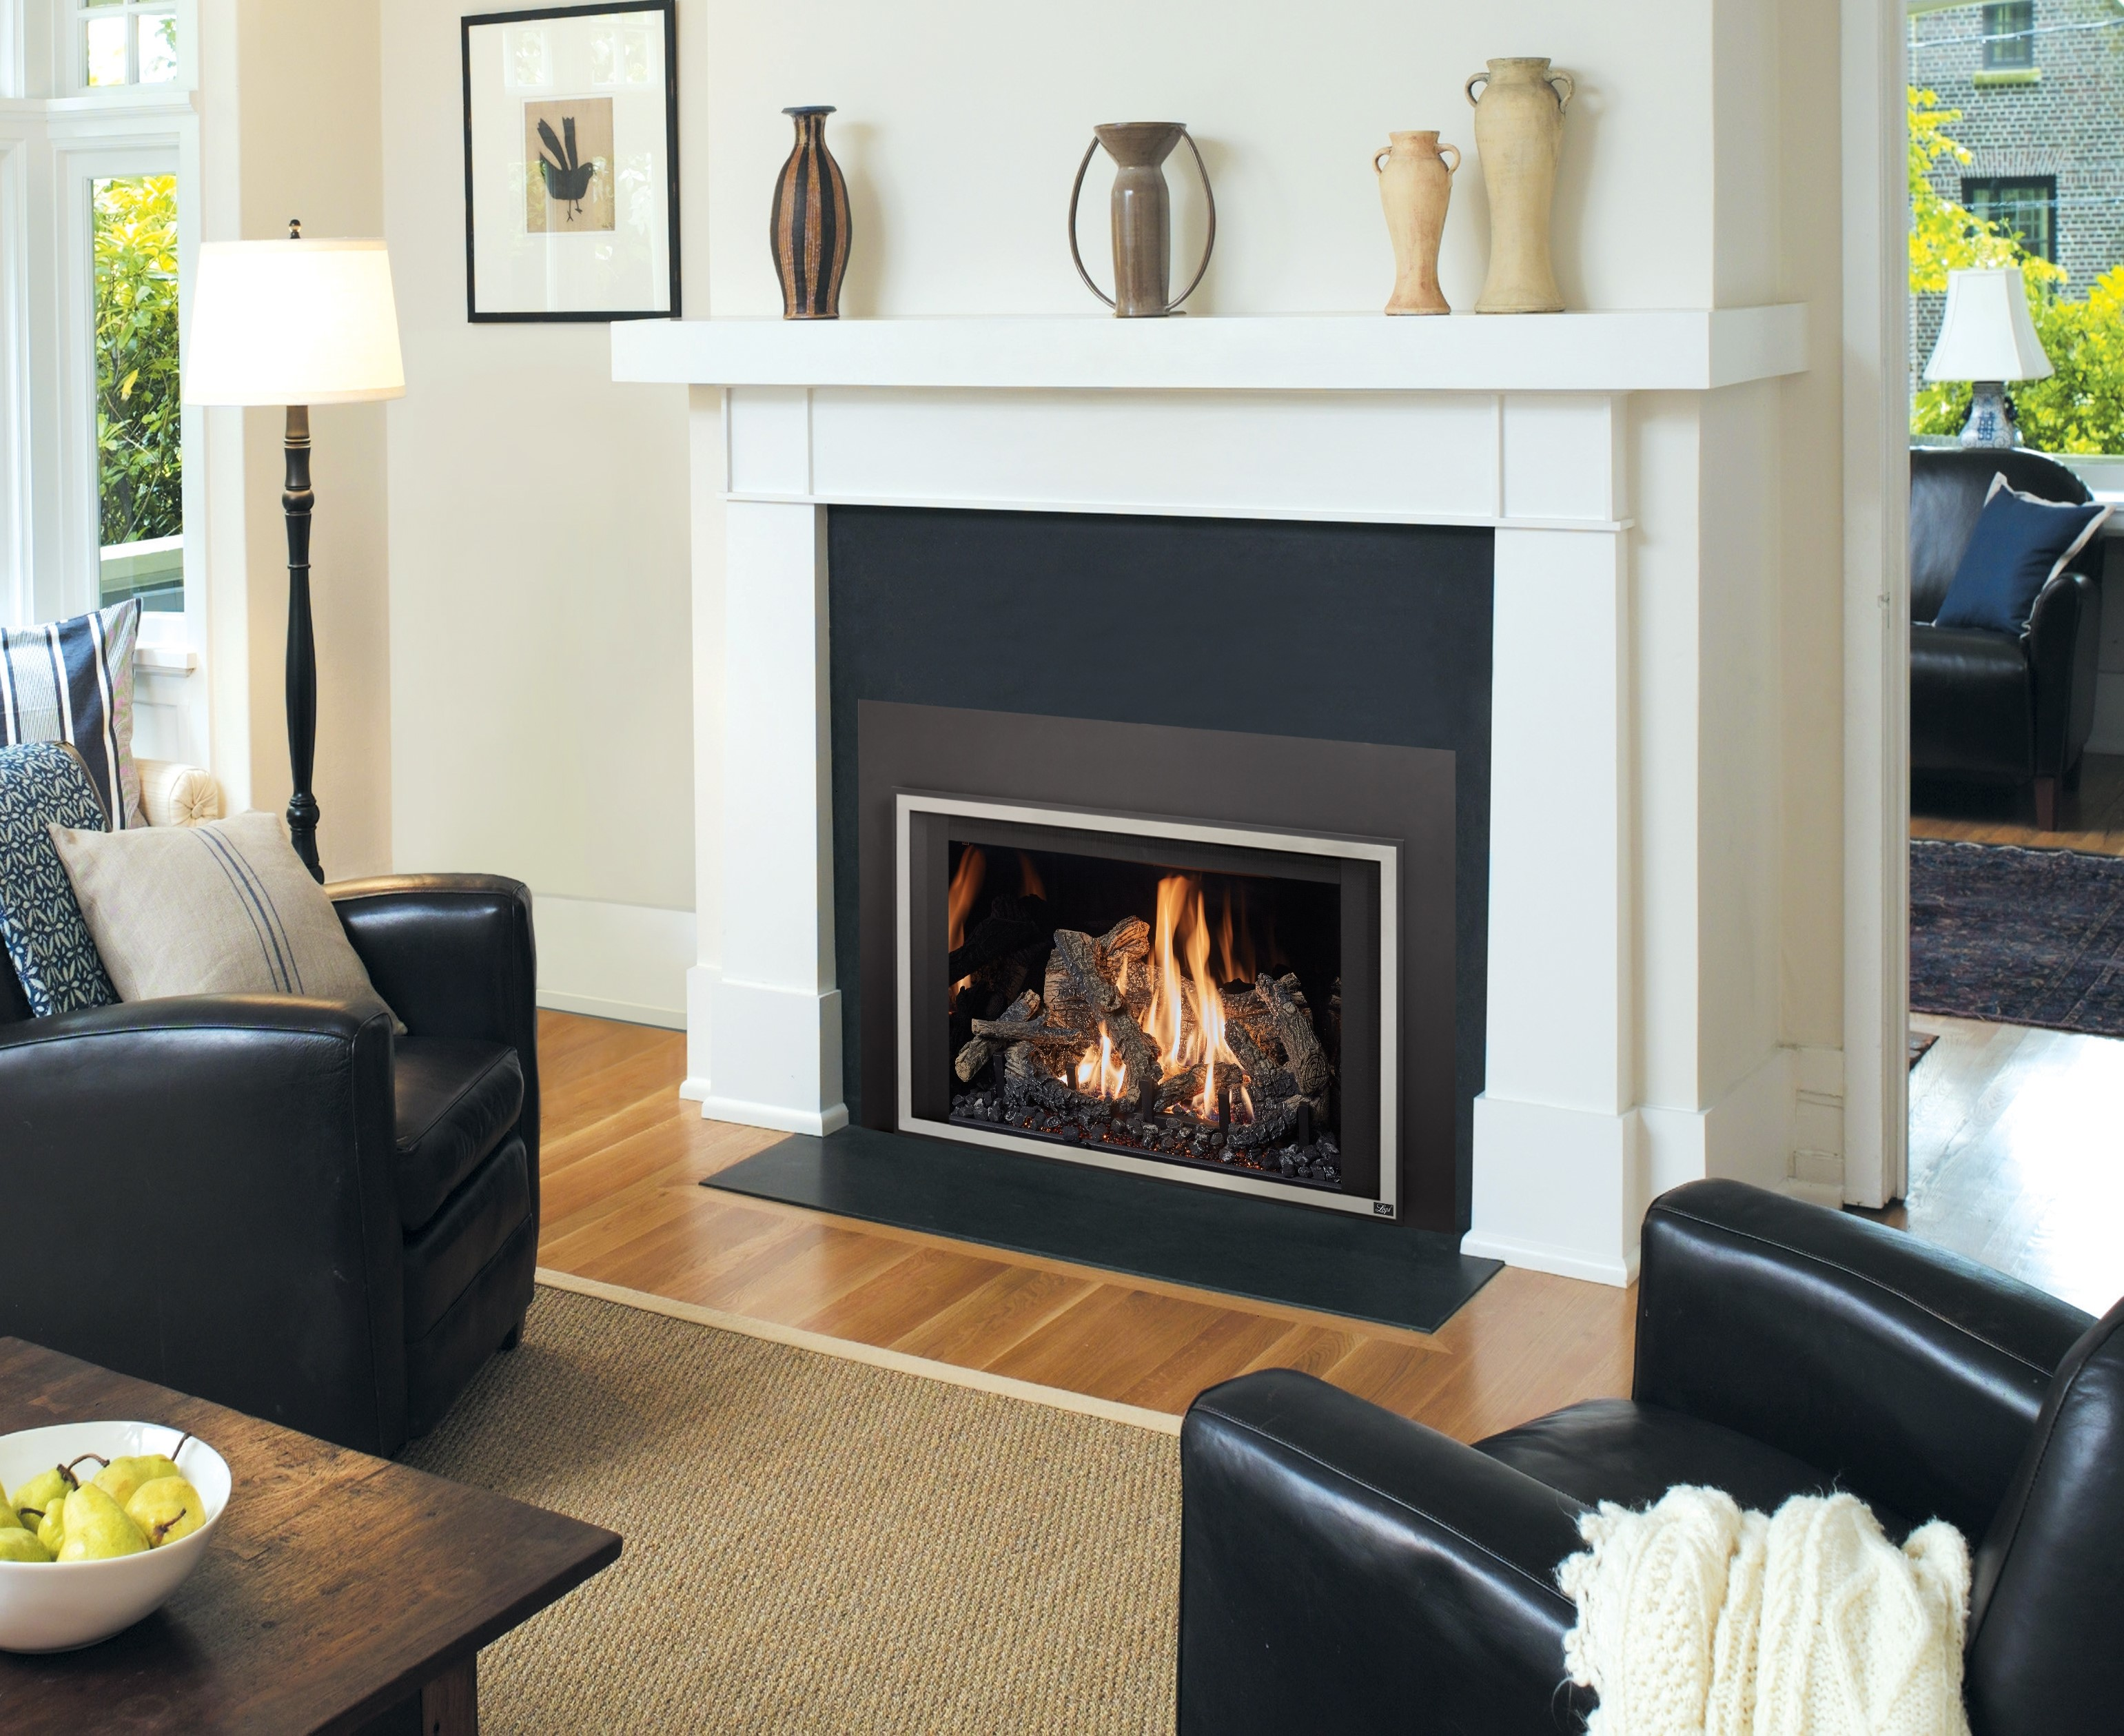 Image of an efficient Gas insert made by Travis Industries featuring a realistic wood log set.